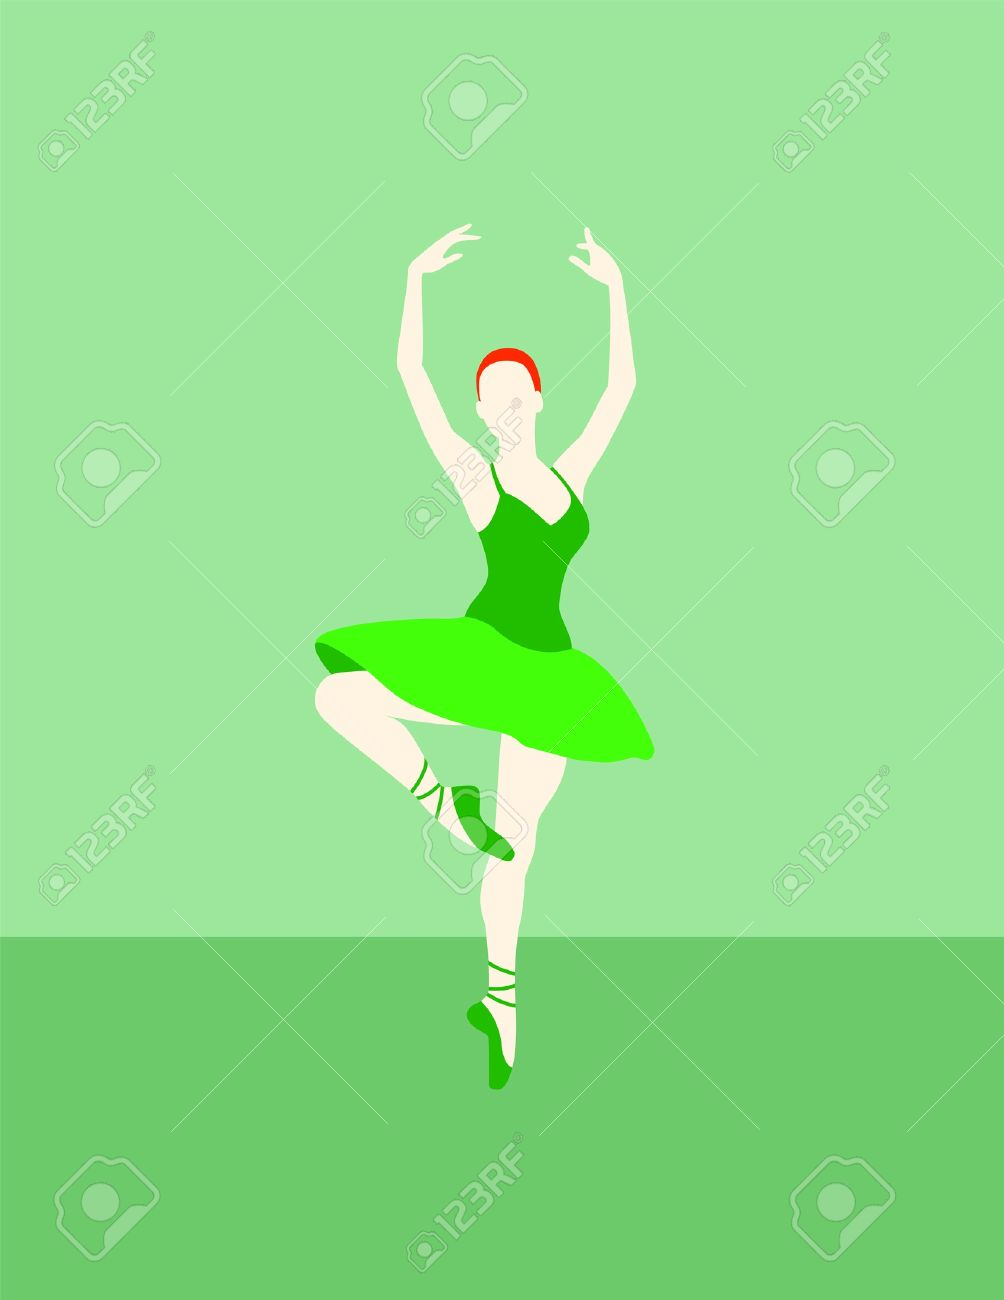 Irish look ginger ballet dancer with a green dress on a green background Stock Vector - 13992397